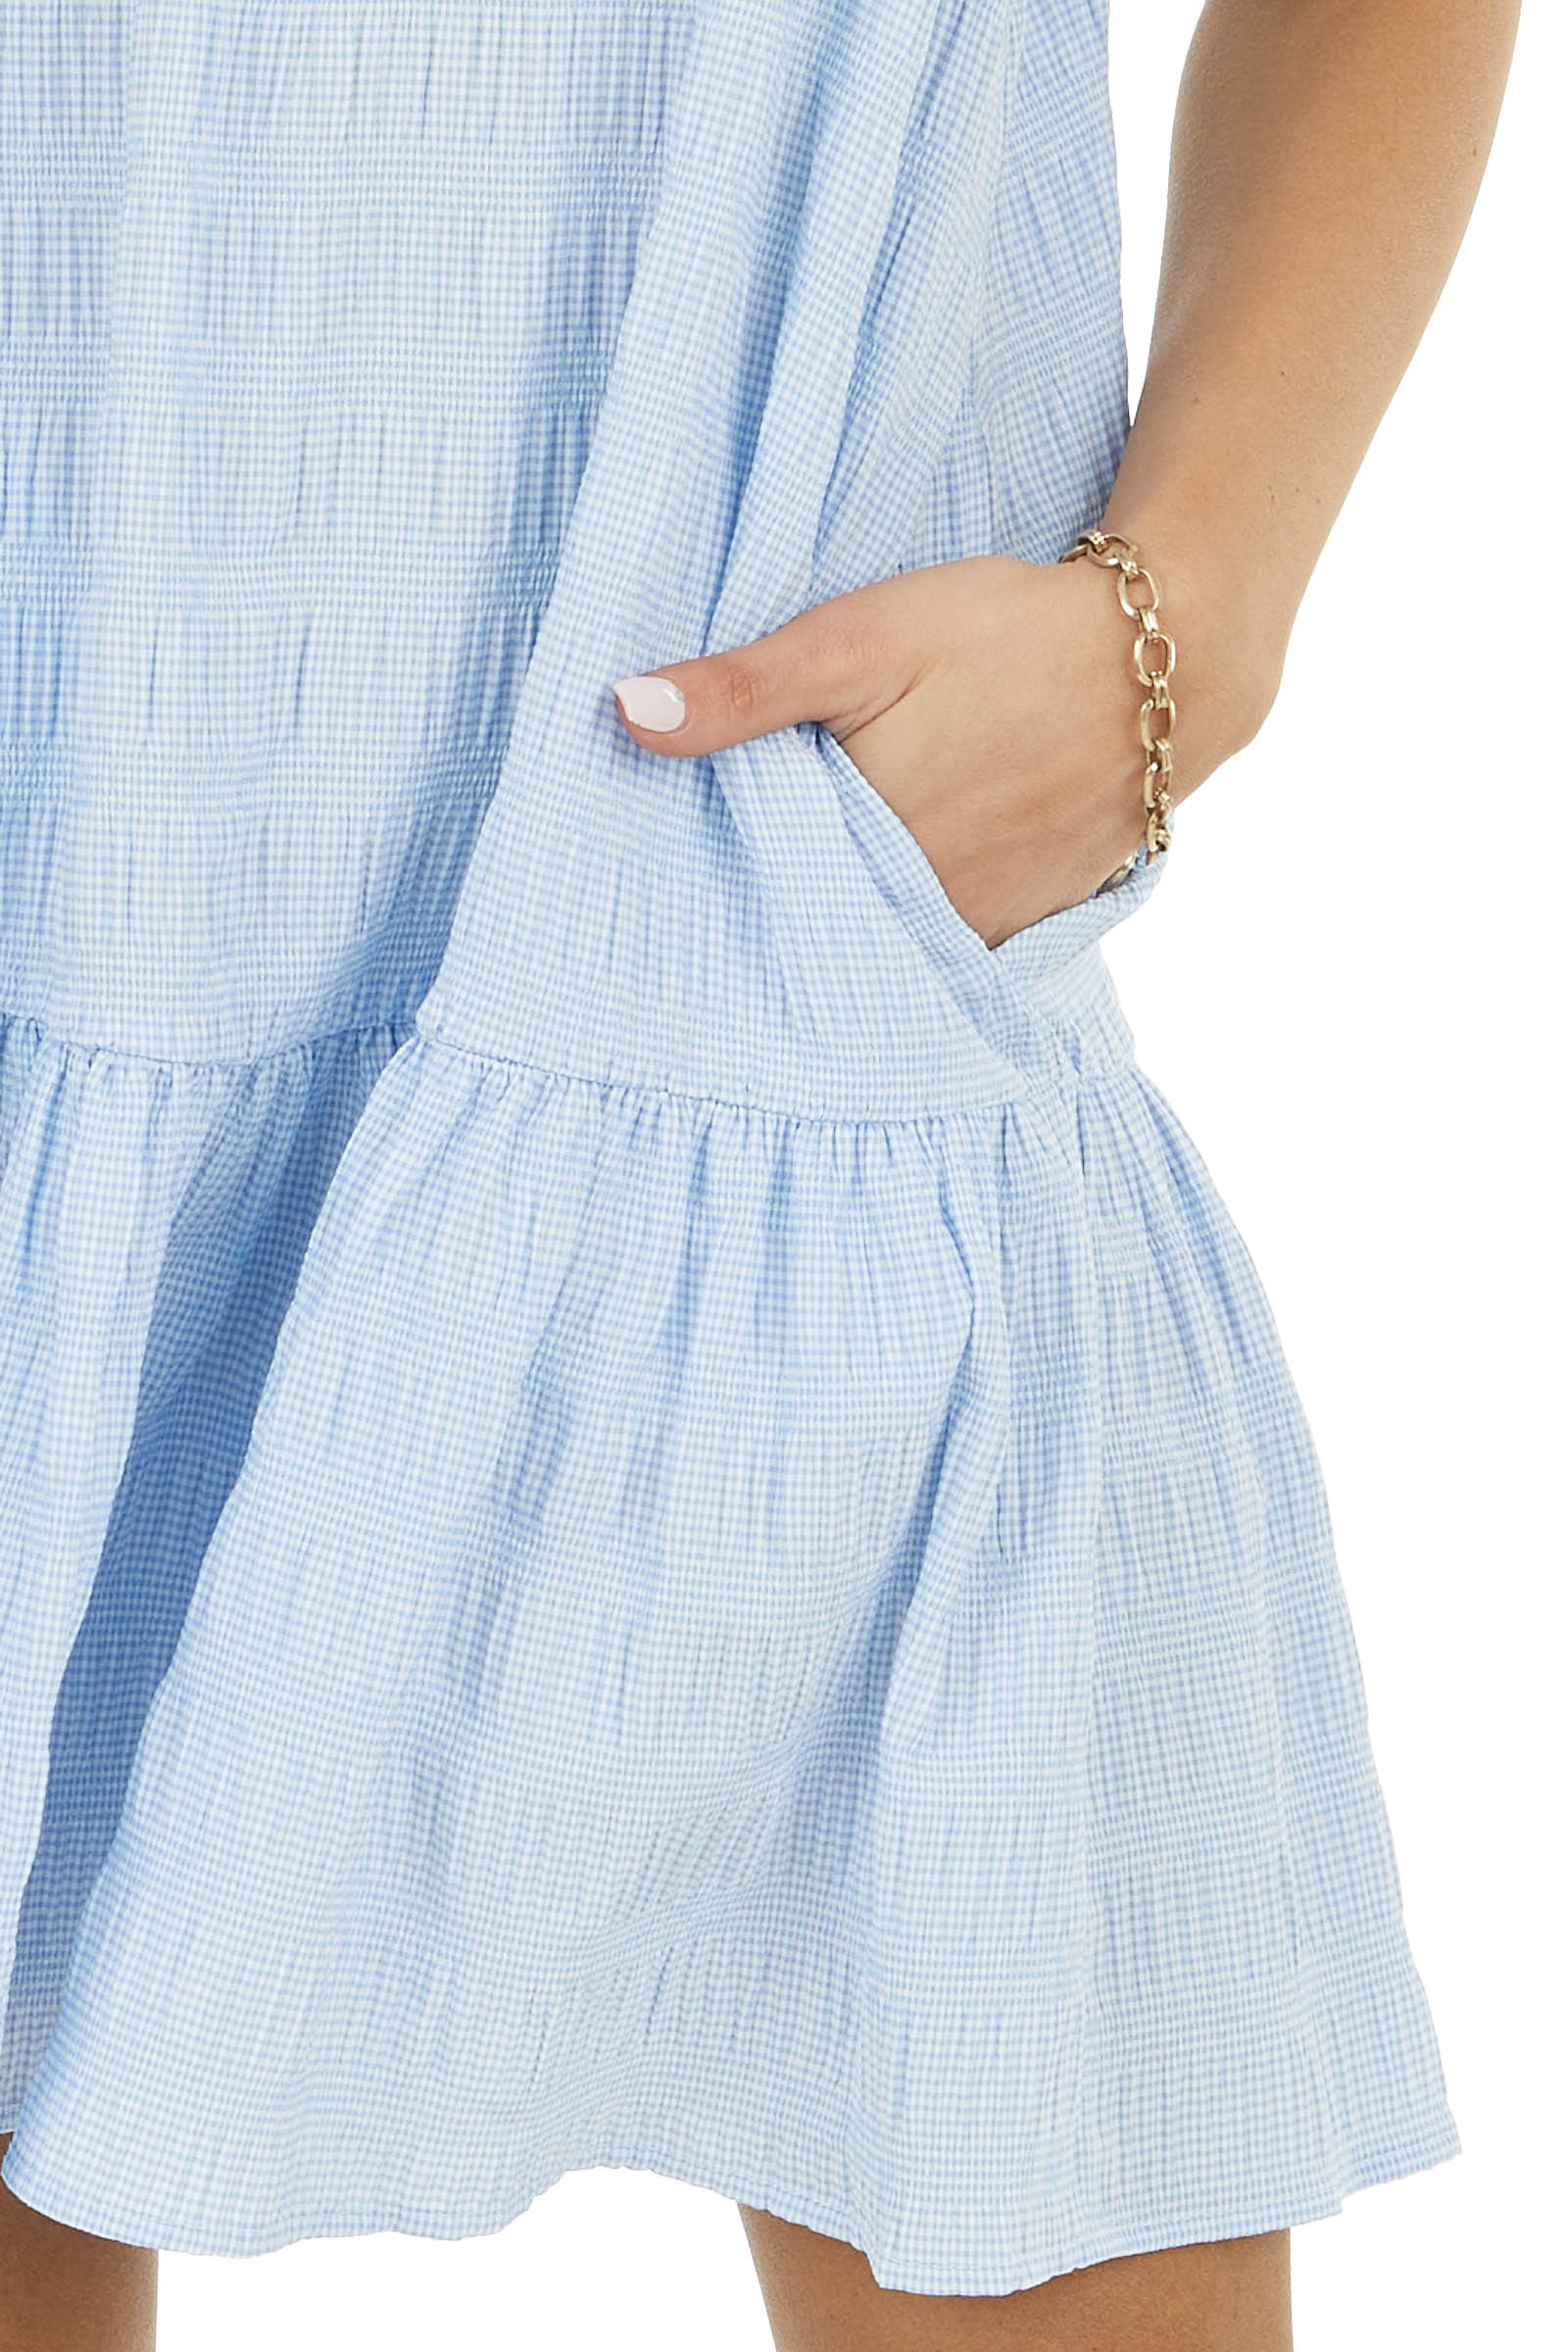 Powder Blue and White Gingham Dress with Tie Straps